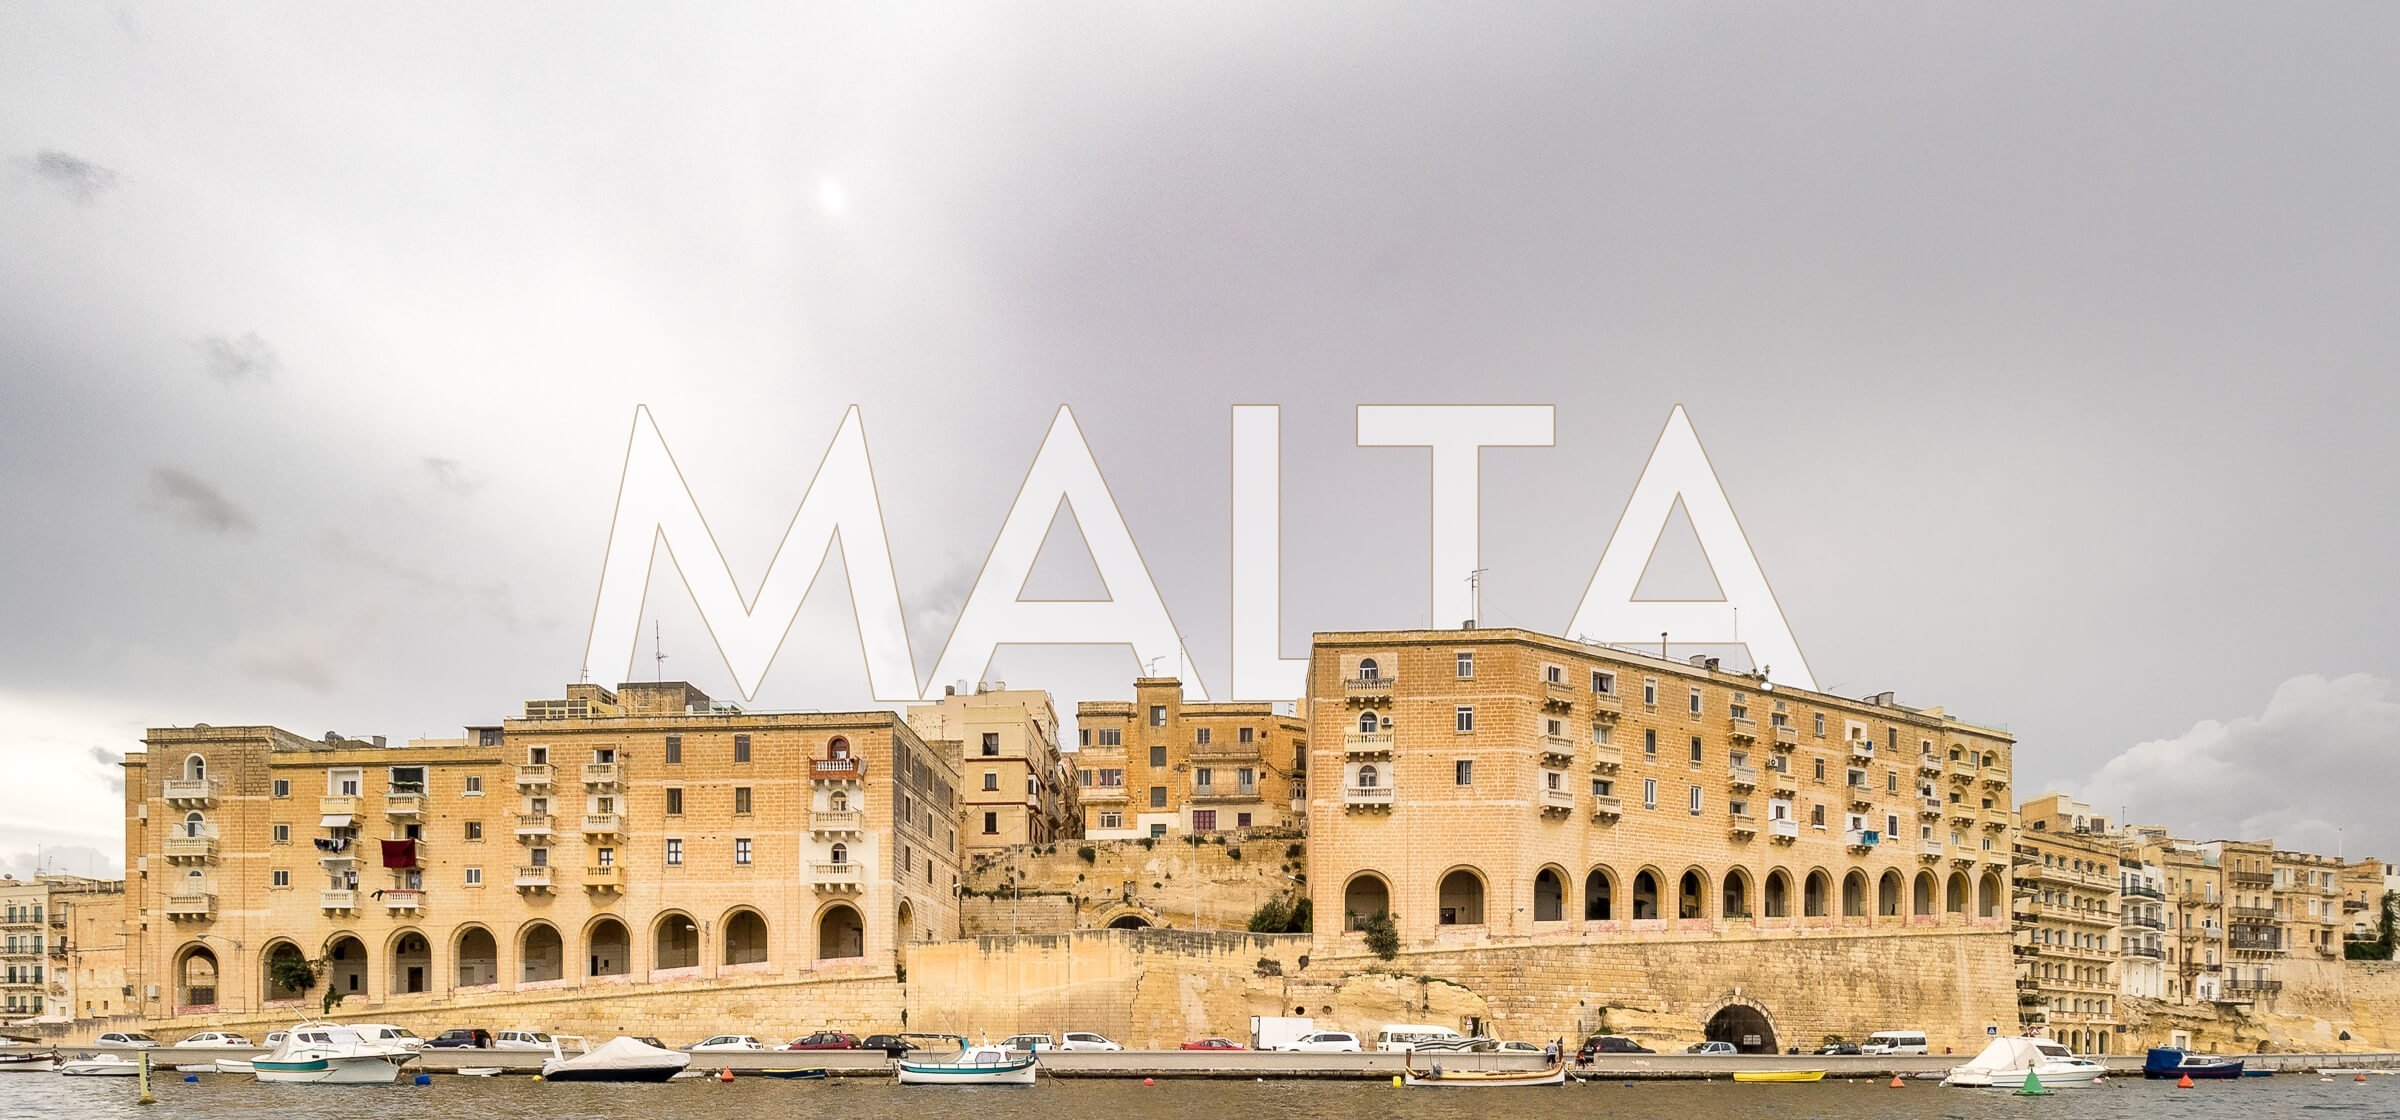 featured image for malta travel posts